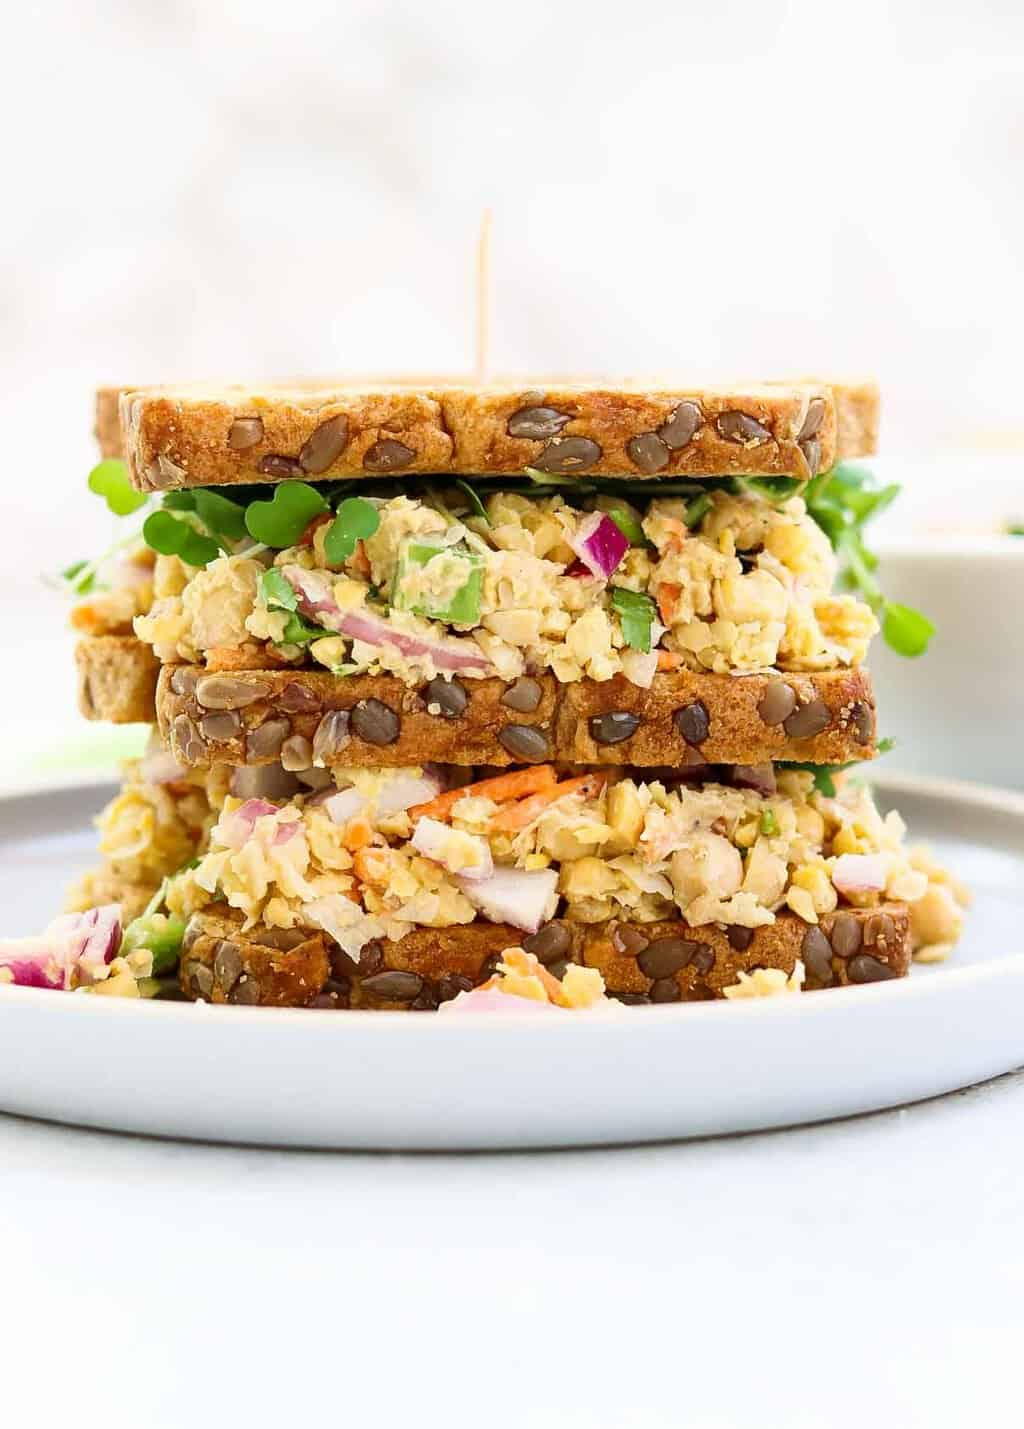 Chickpea tuna salad sandwich on a blue plate.